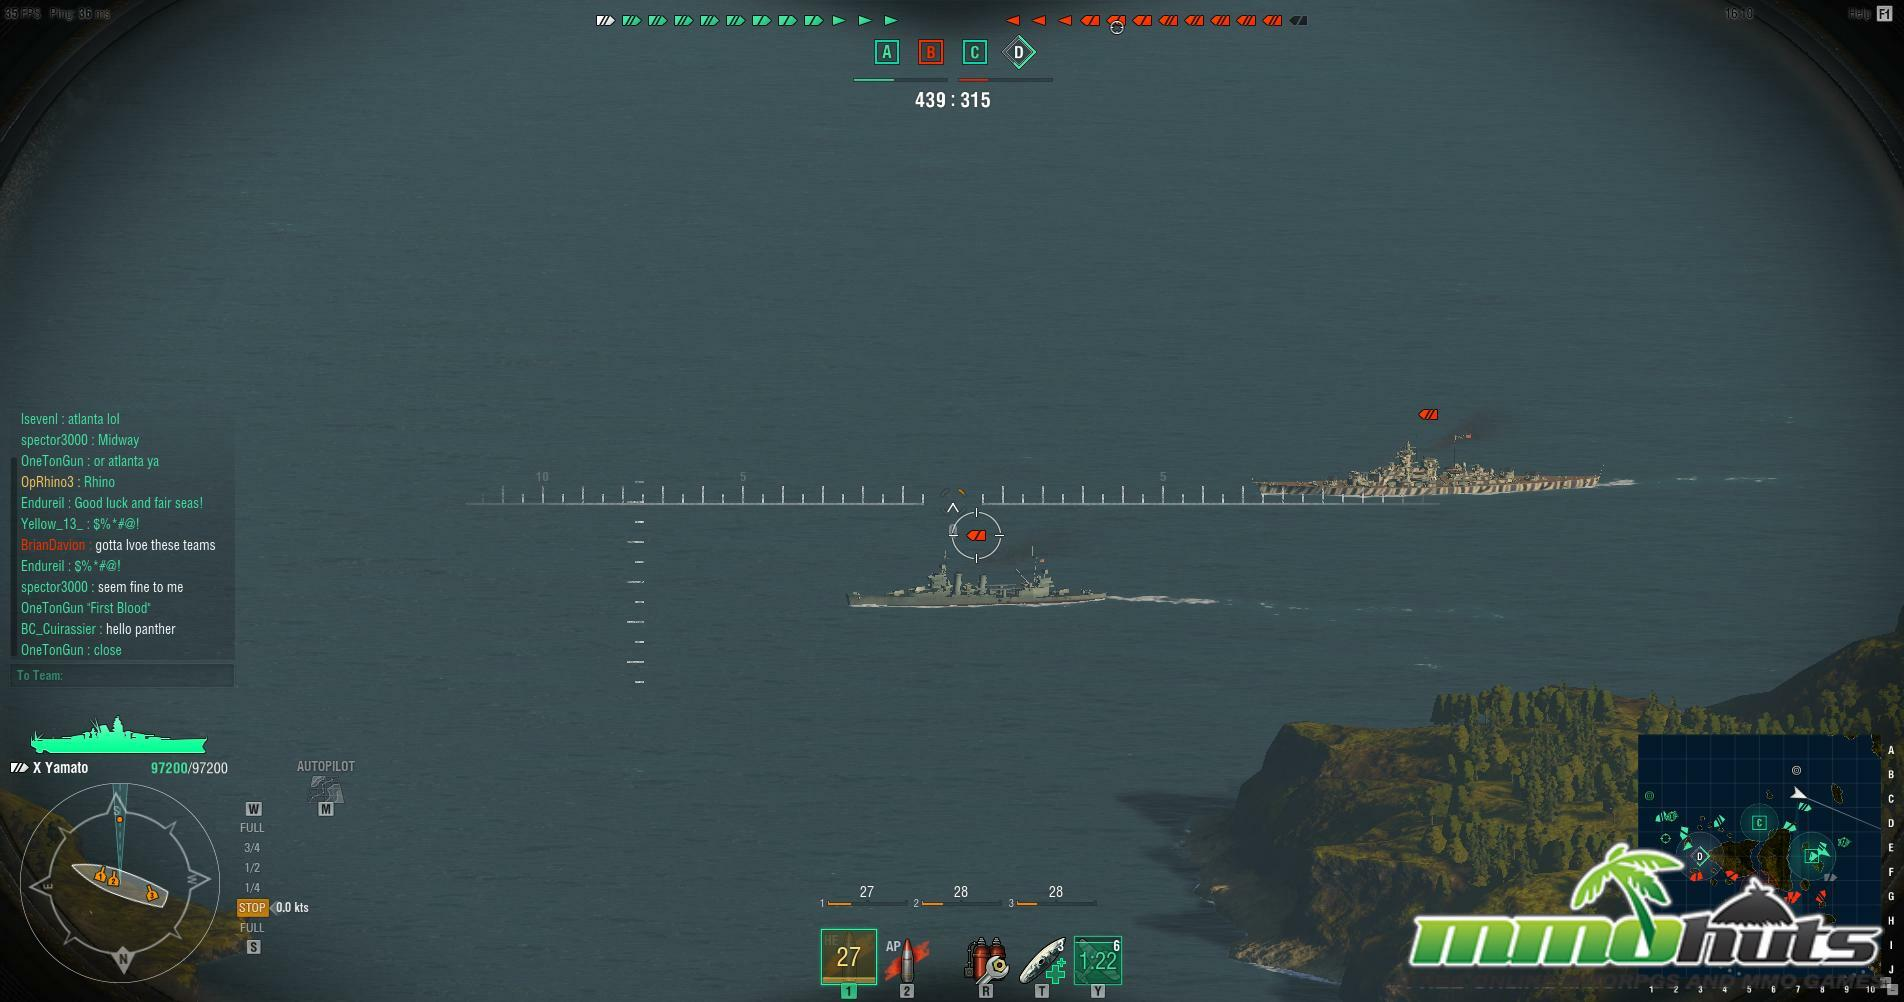 worldofwarships 2015-10-01 16-32-27-03